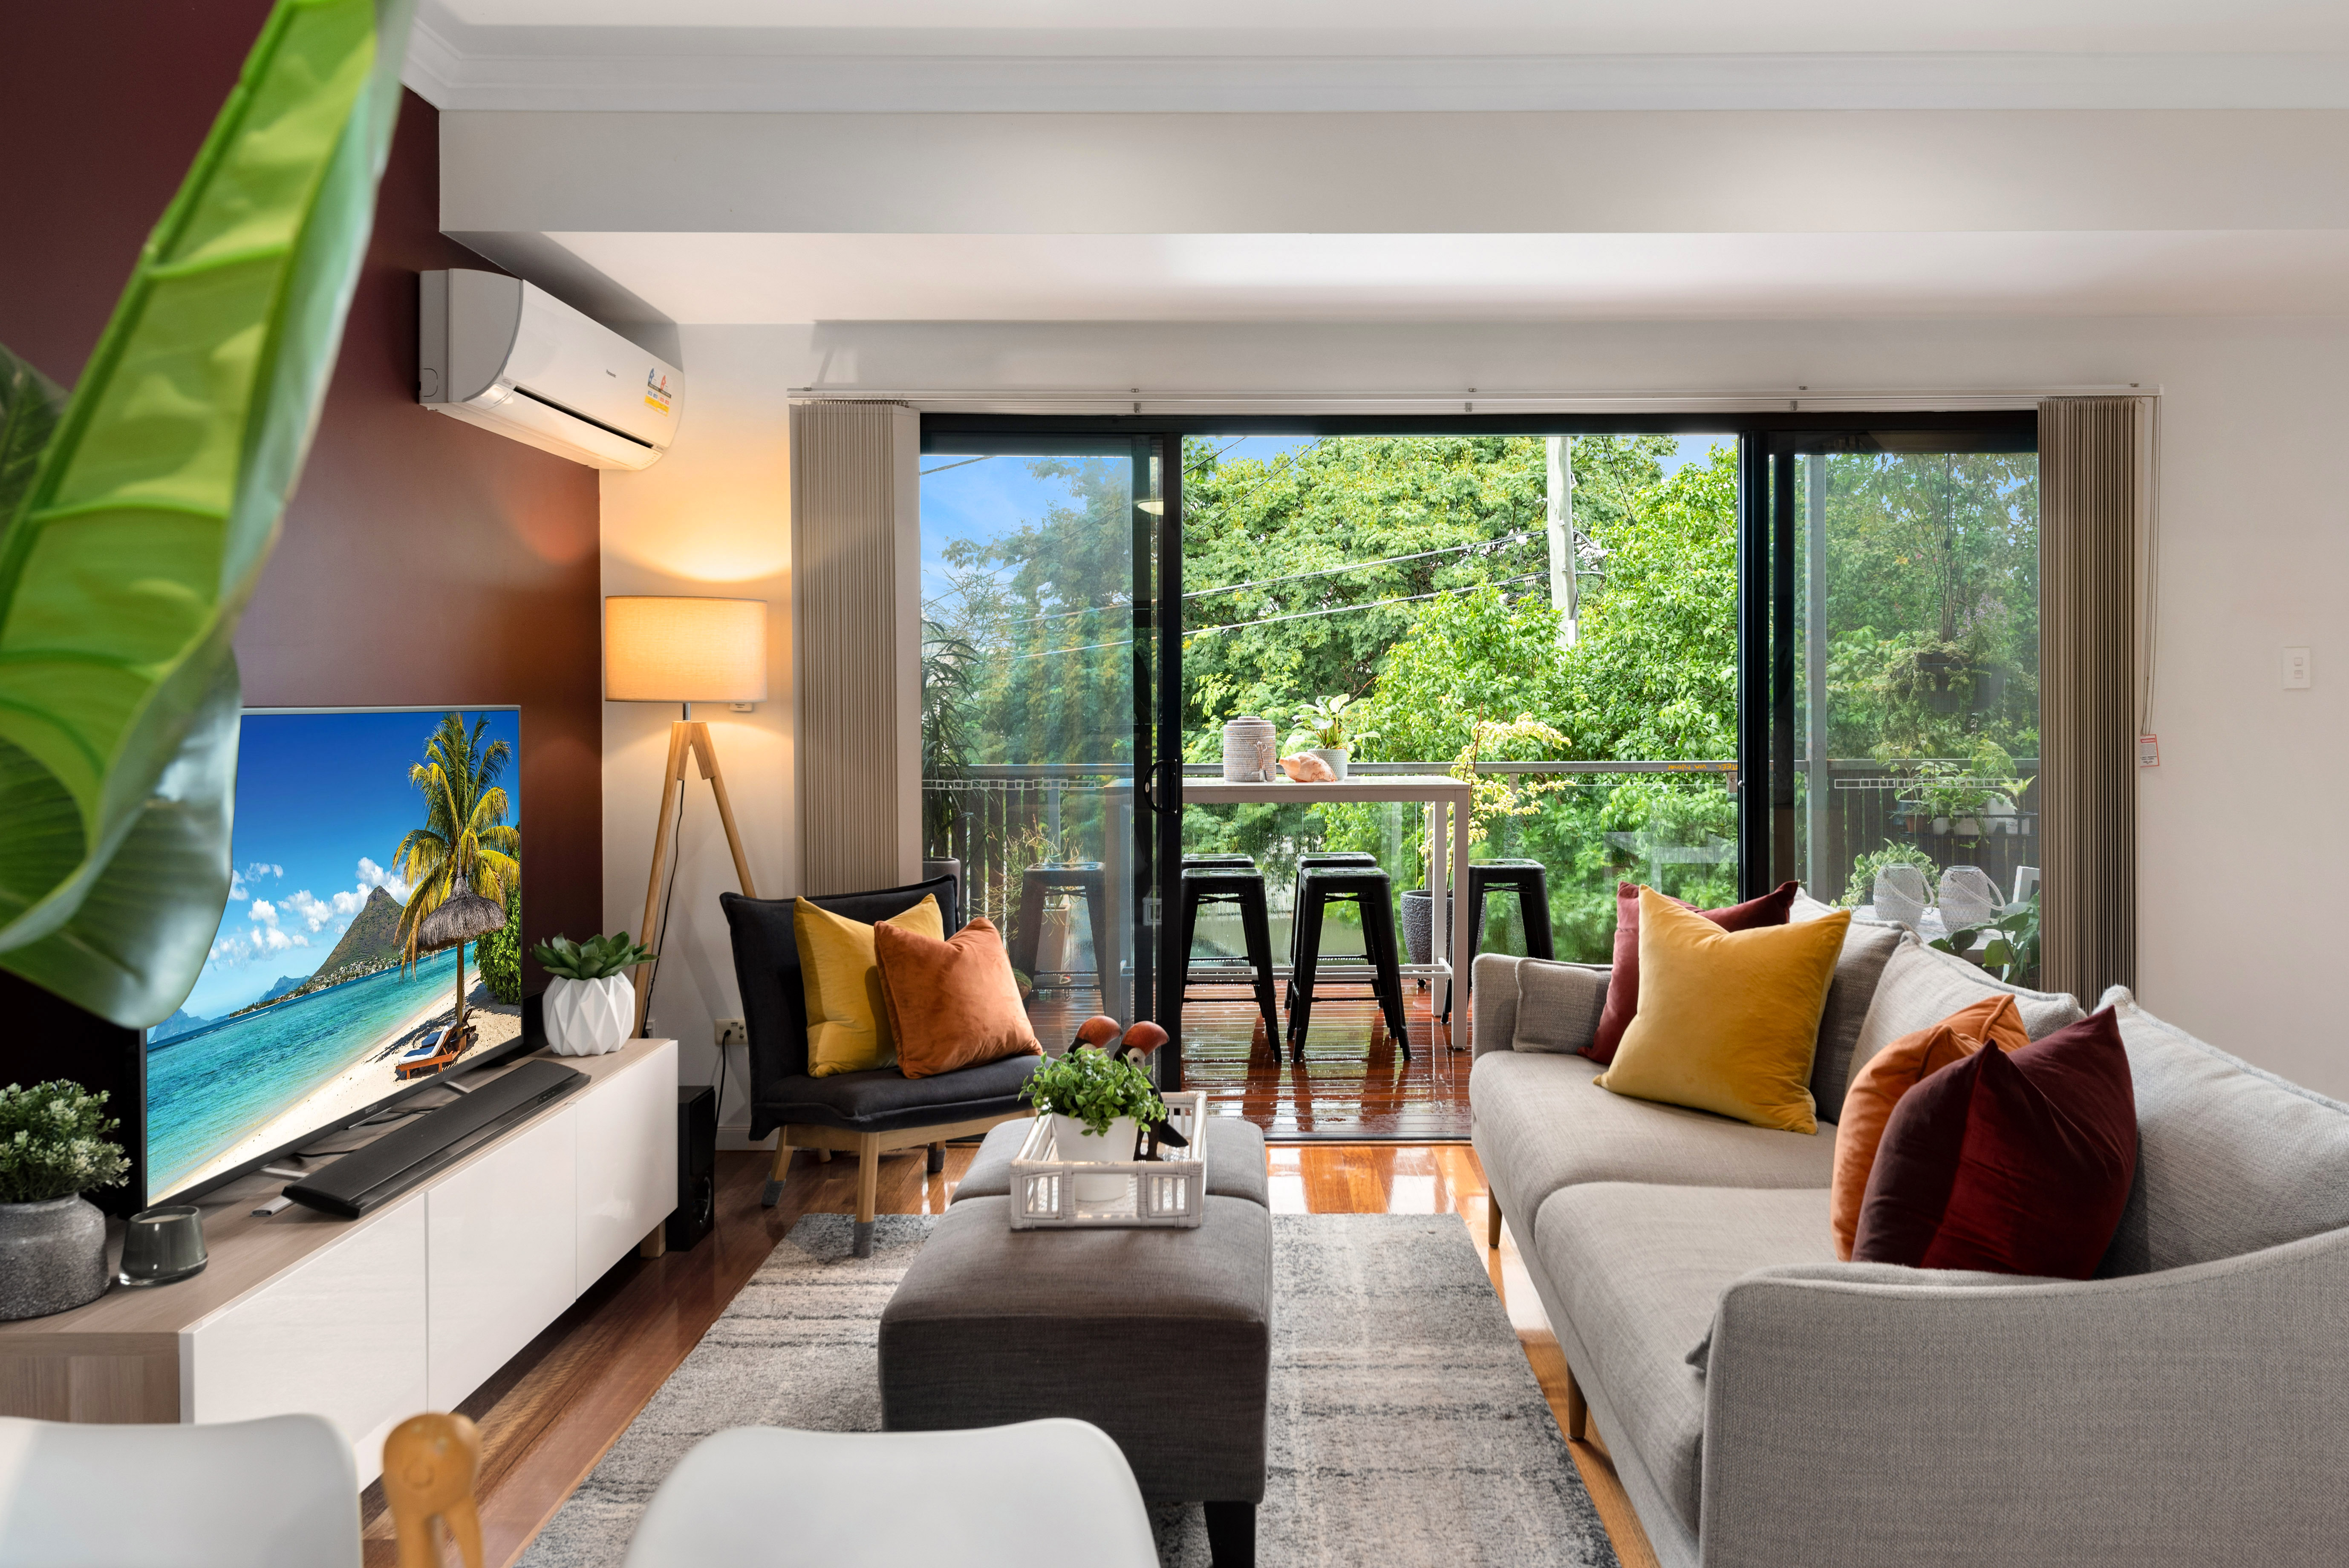 TRI-LEVEL TOWNHOUSE WITH INNER-CITY LIVEABILITY